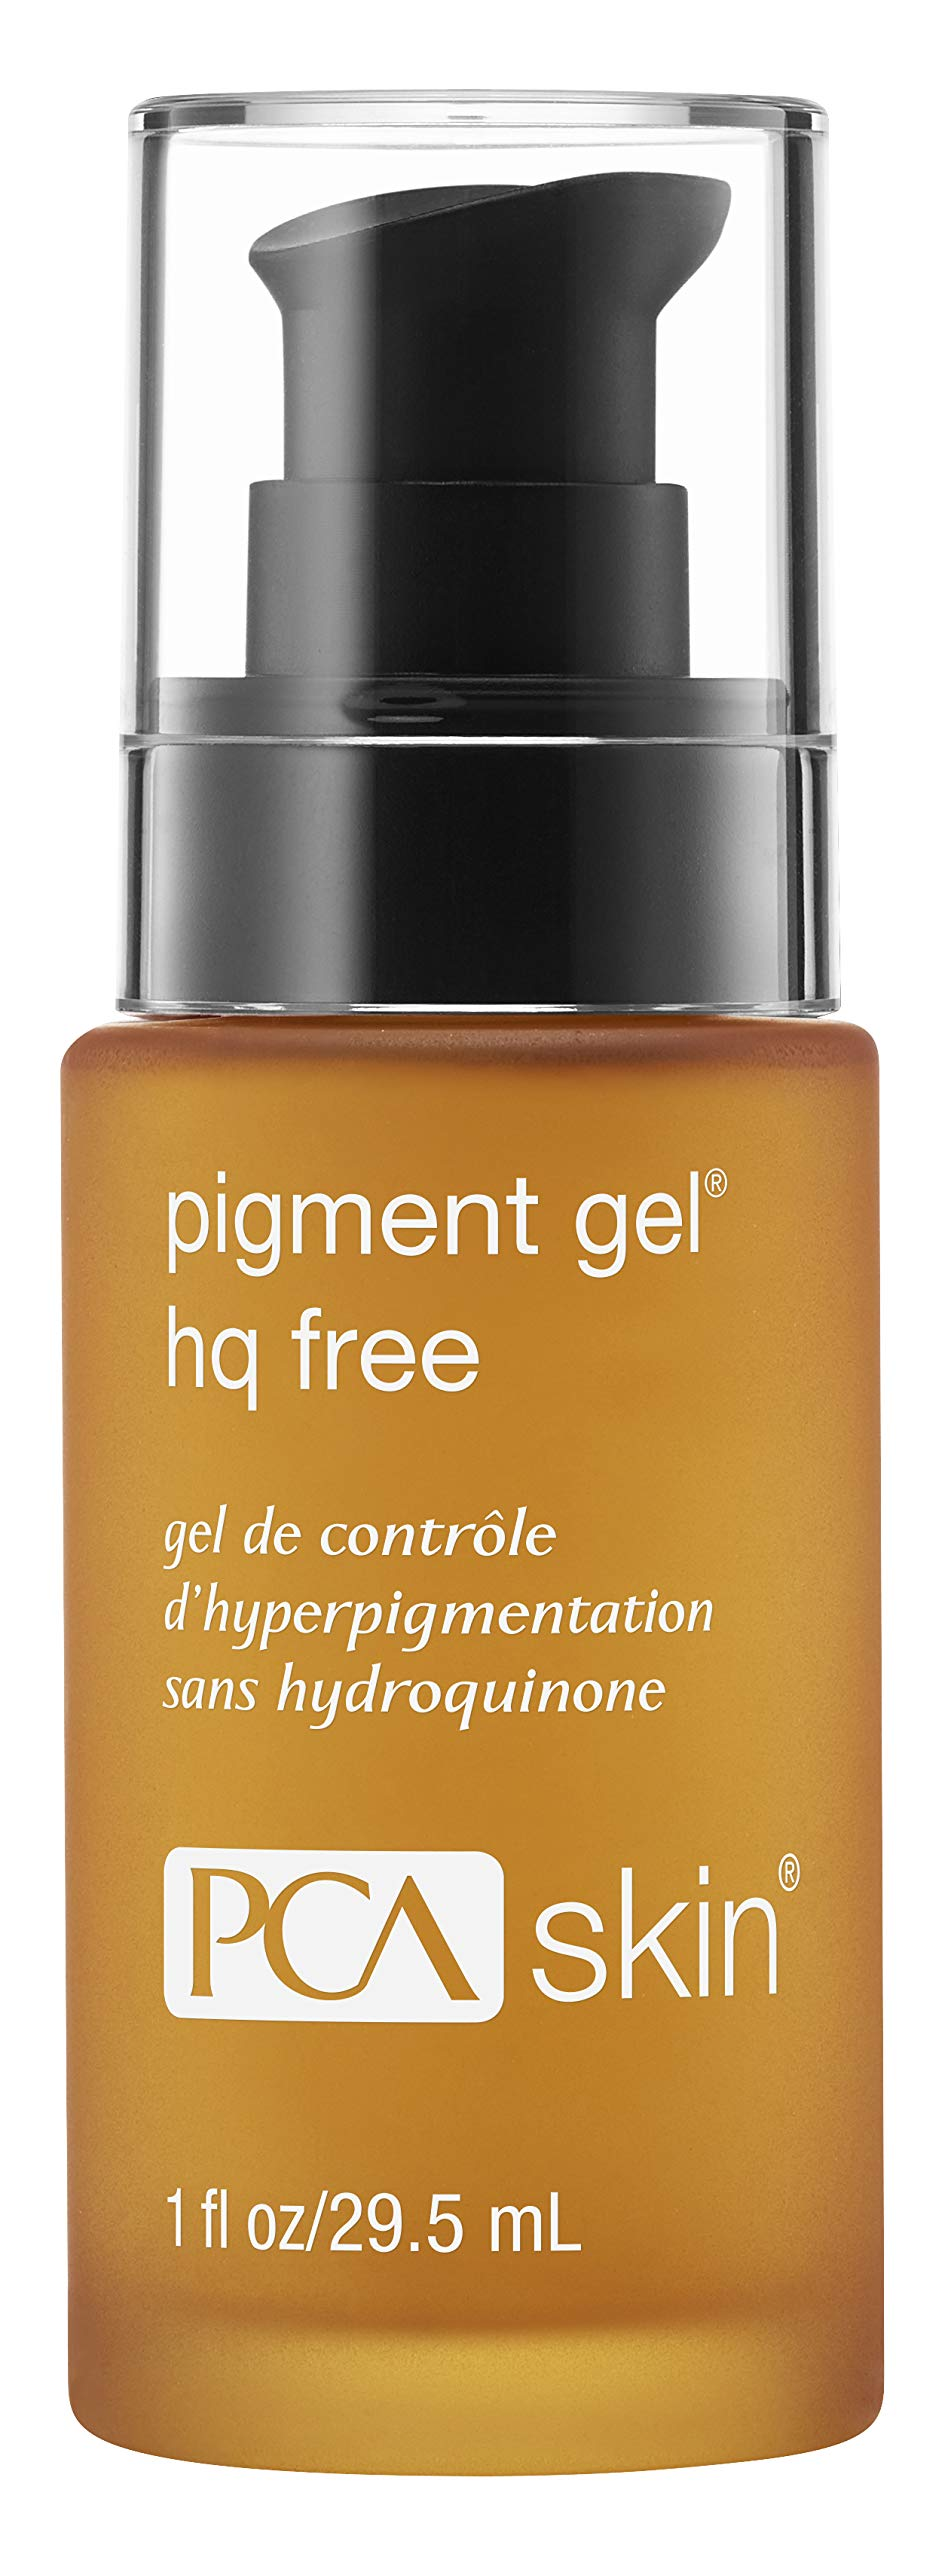 PCA SKIN HQ-Free Pigment Gel - Treatment Serum for Discoloration, Dark Spots & Hyperpigmentation (1 oz)